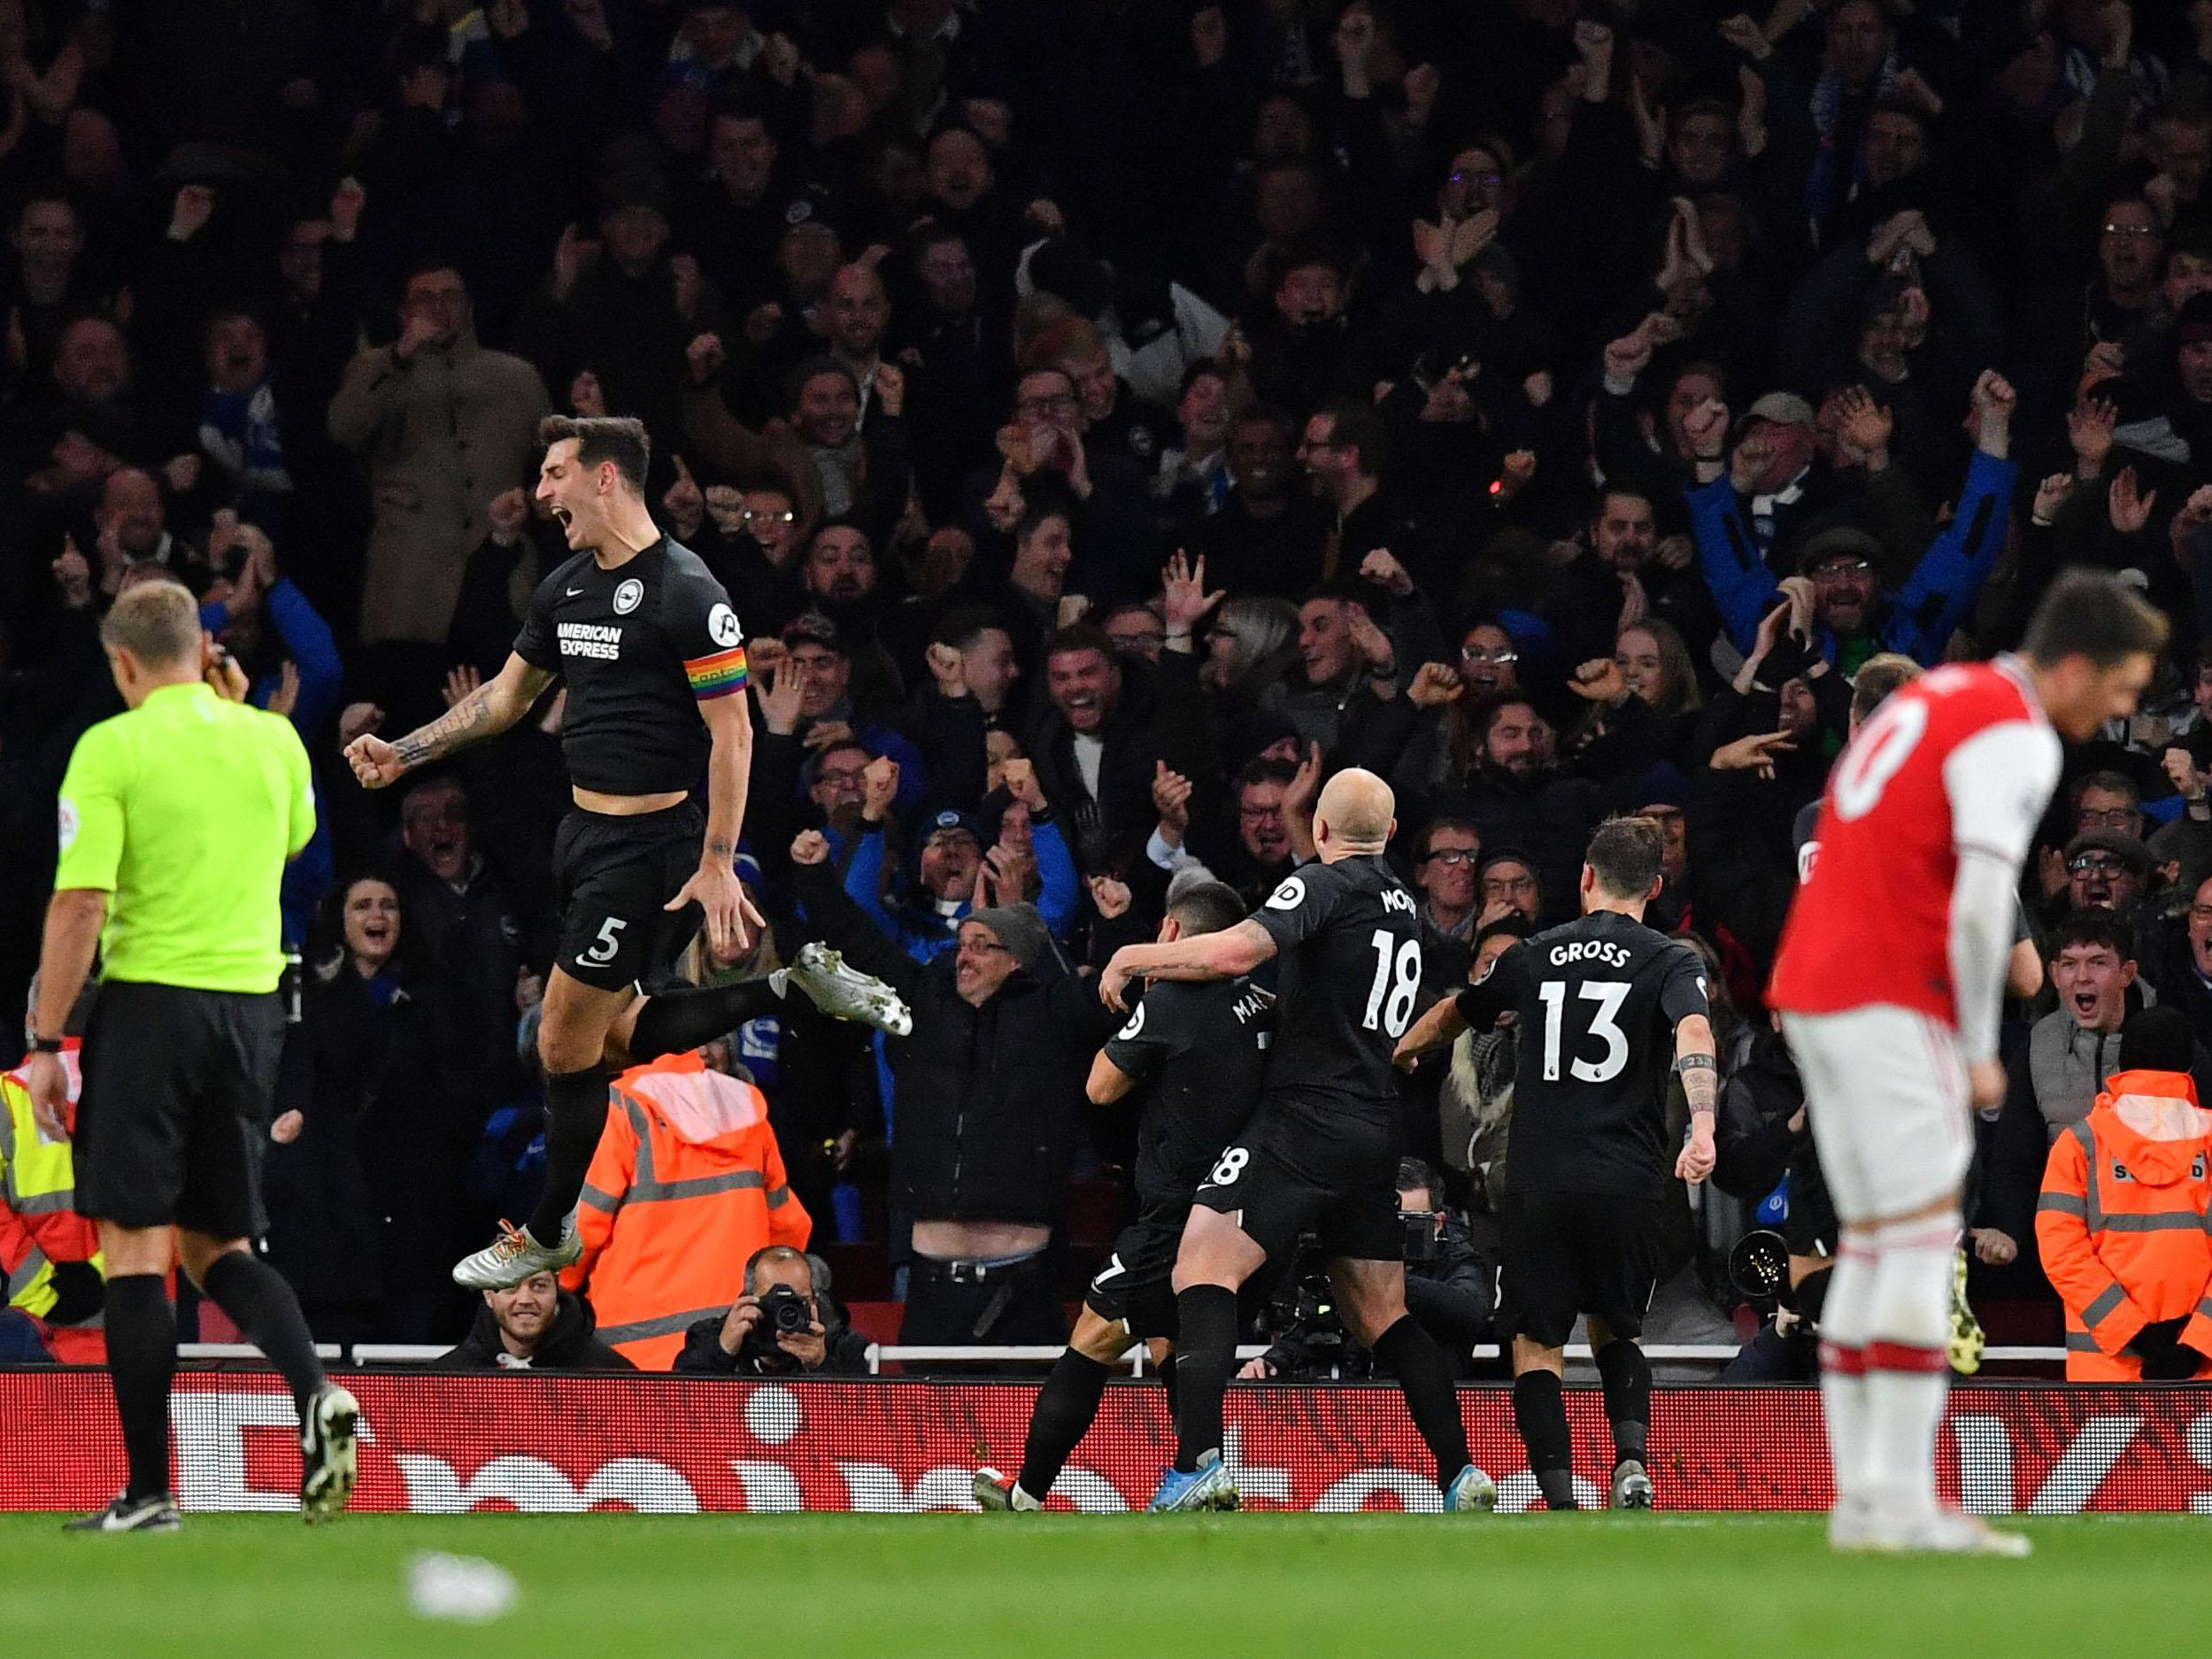 Opposition teams are using Arsenal's disgruntled fan base against them, says Brighton defender Lewis Dunk